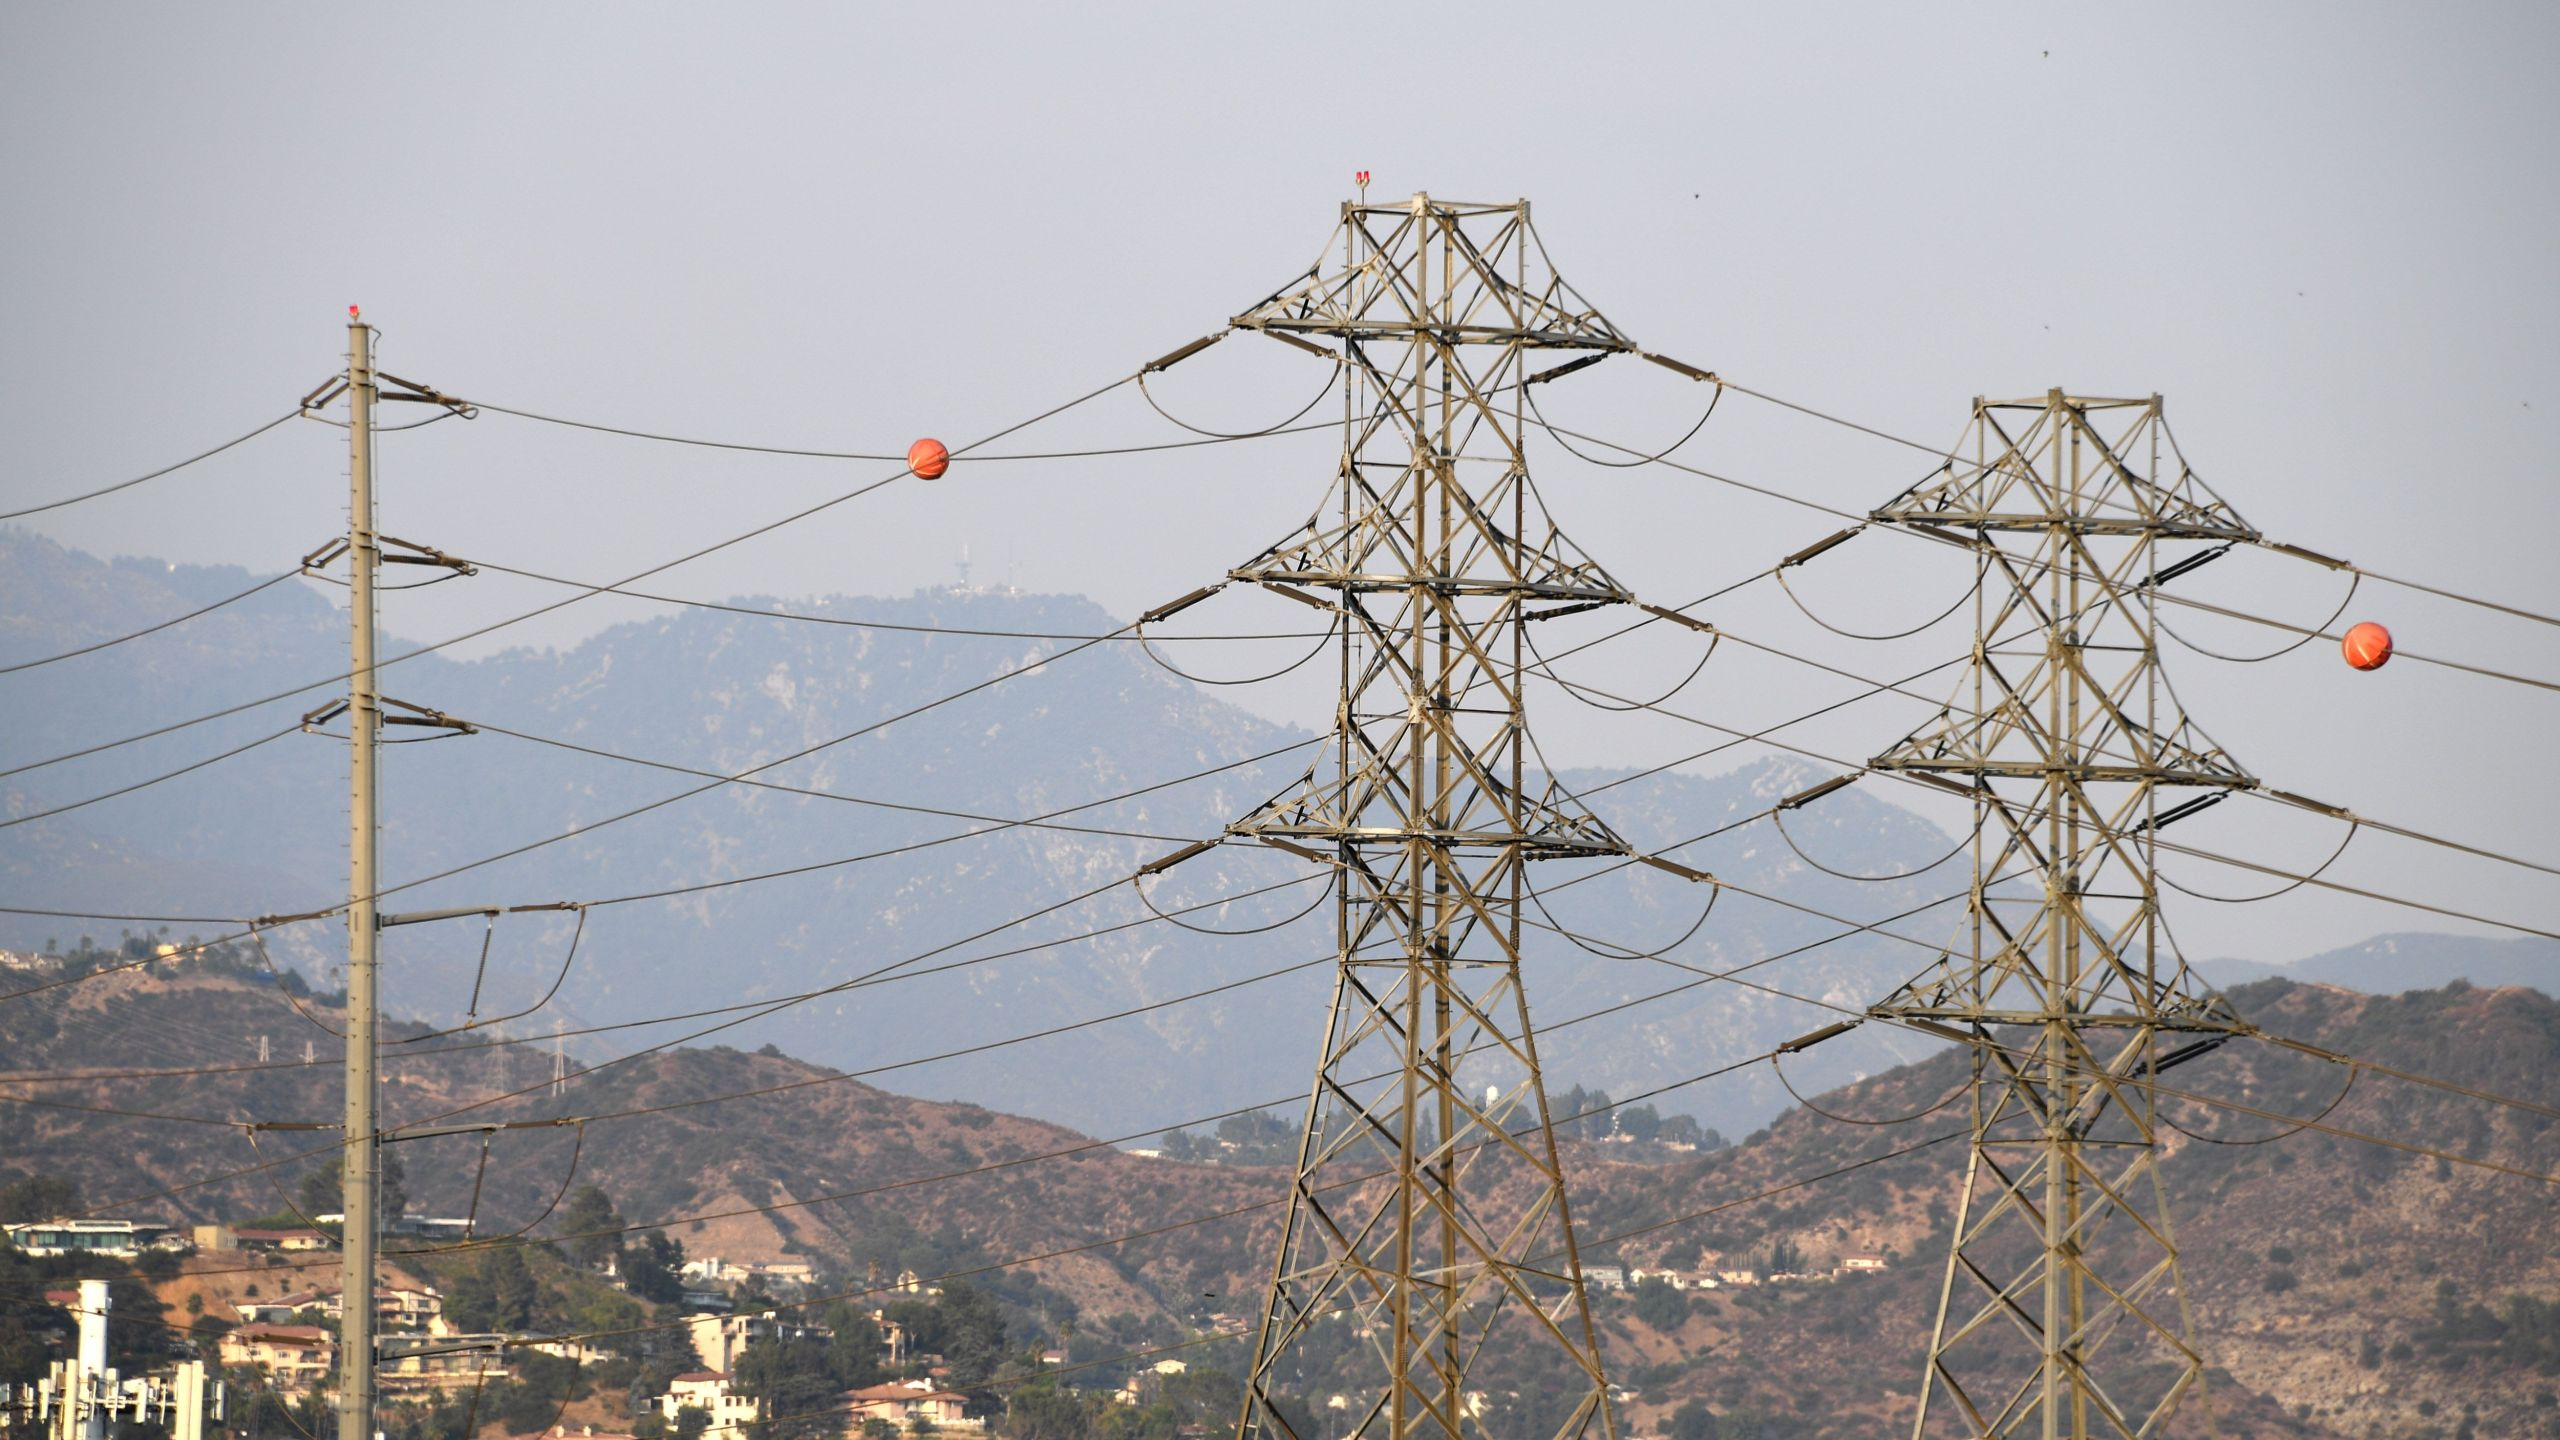 Electrical power line towers are seen in Los Angeles on Aug. 19, 2020. (Robyn Beck/AFP via Getty Images)